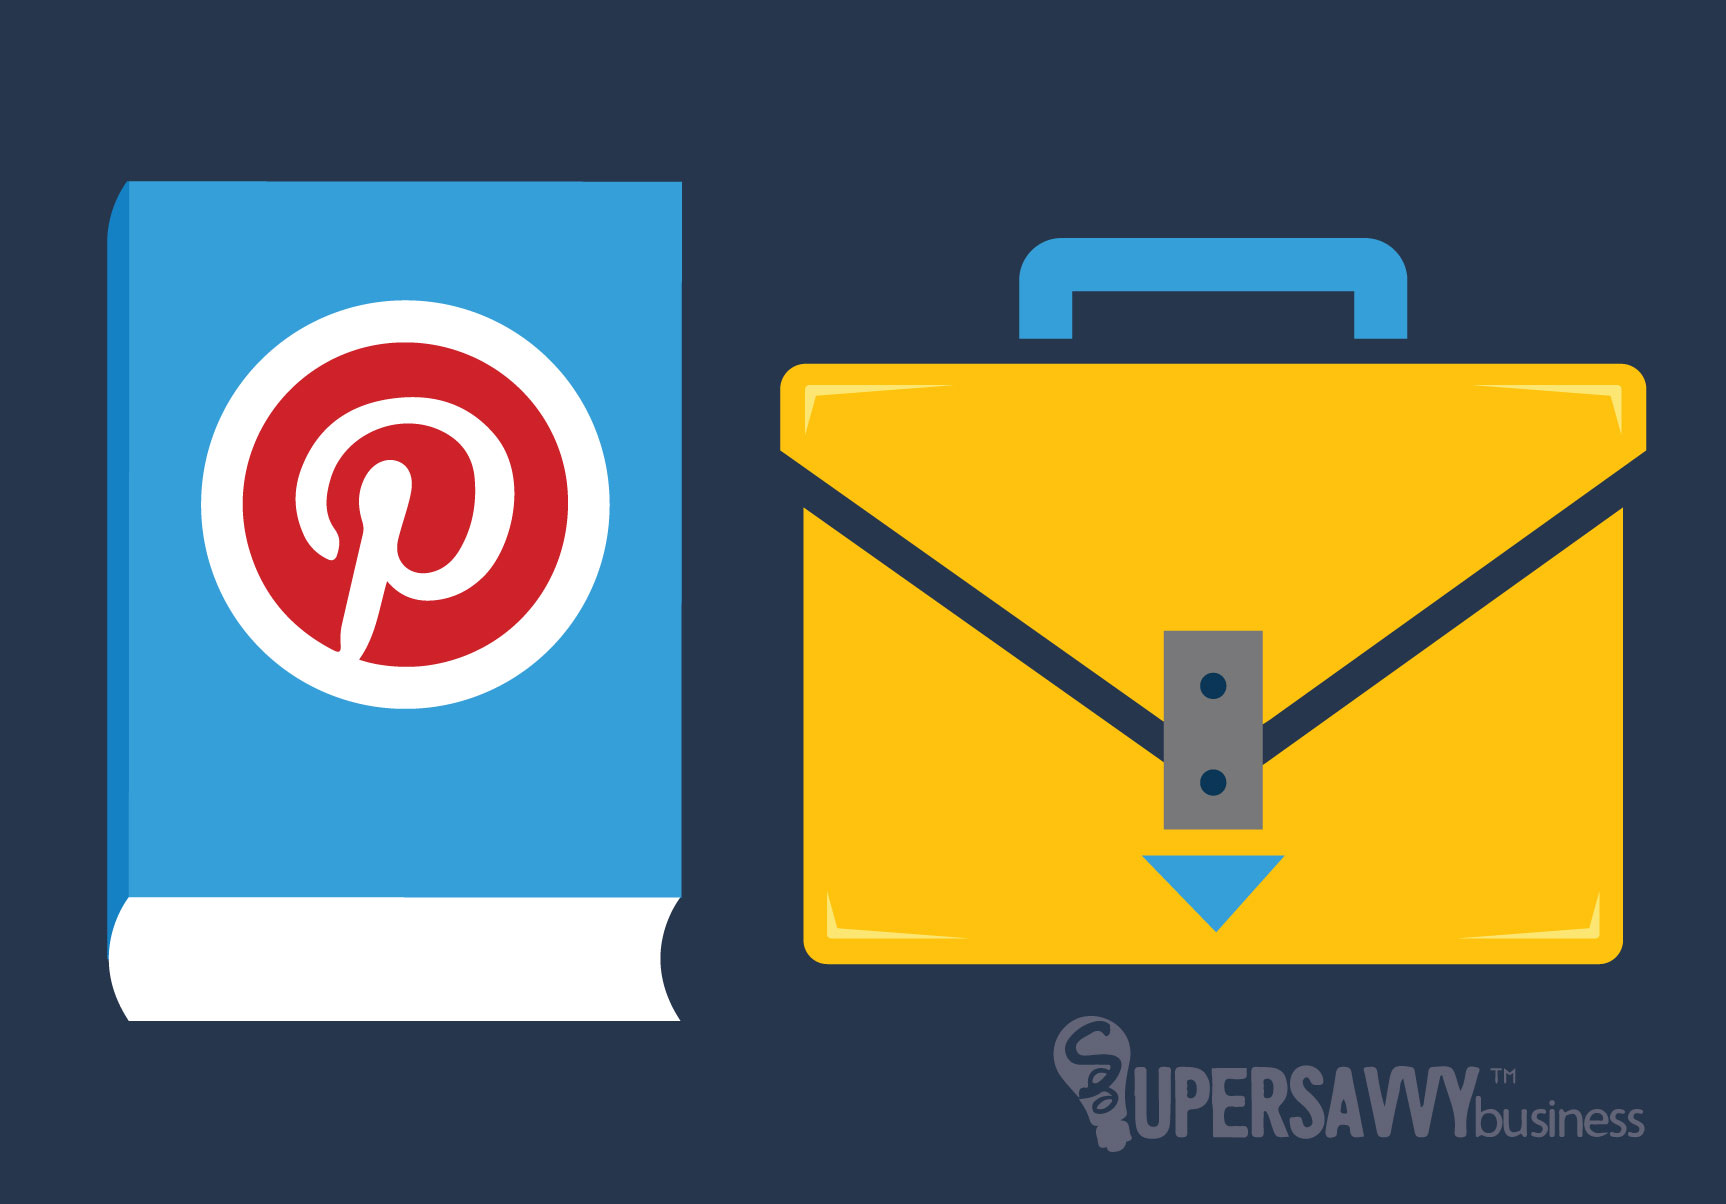 A Complete Guide About Pinterest For Business (watermark)